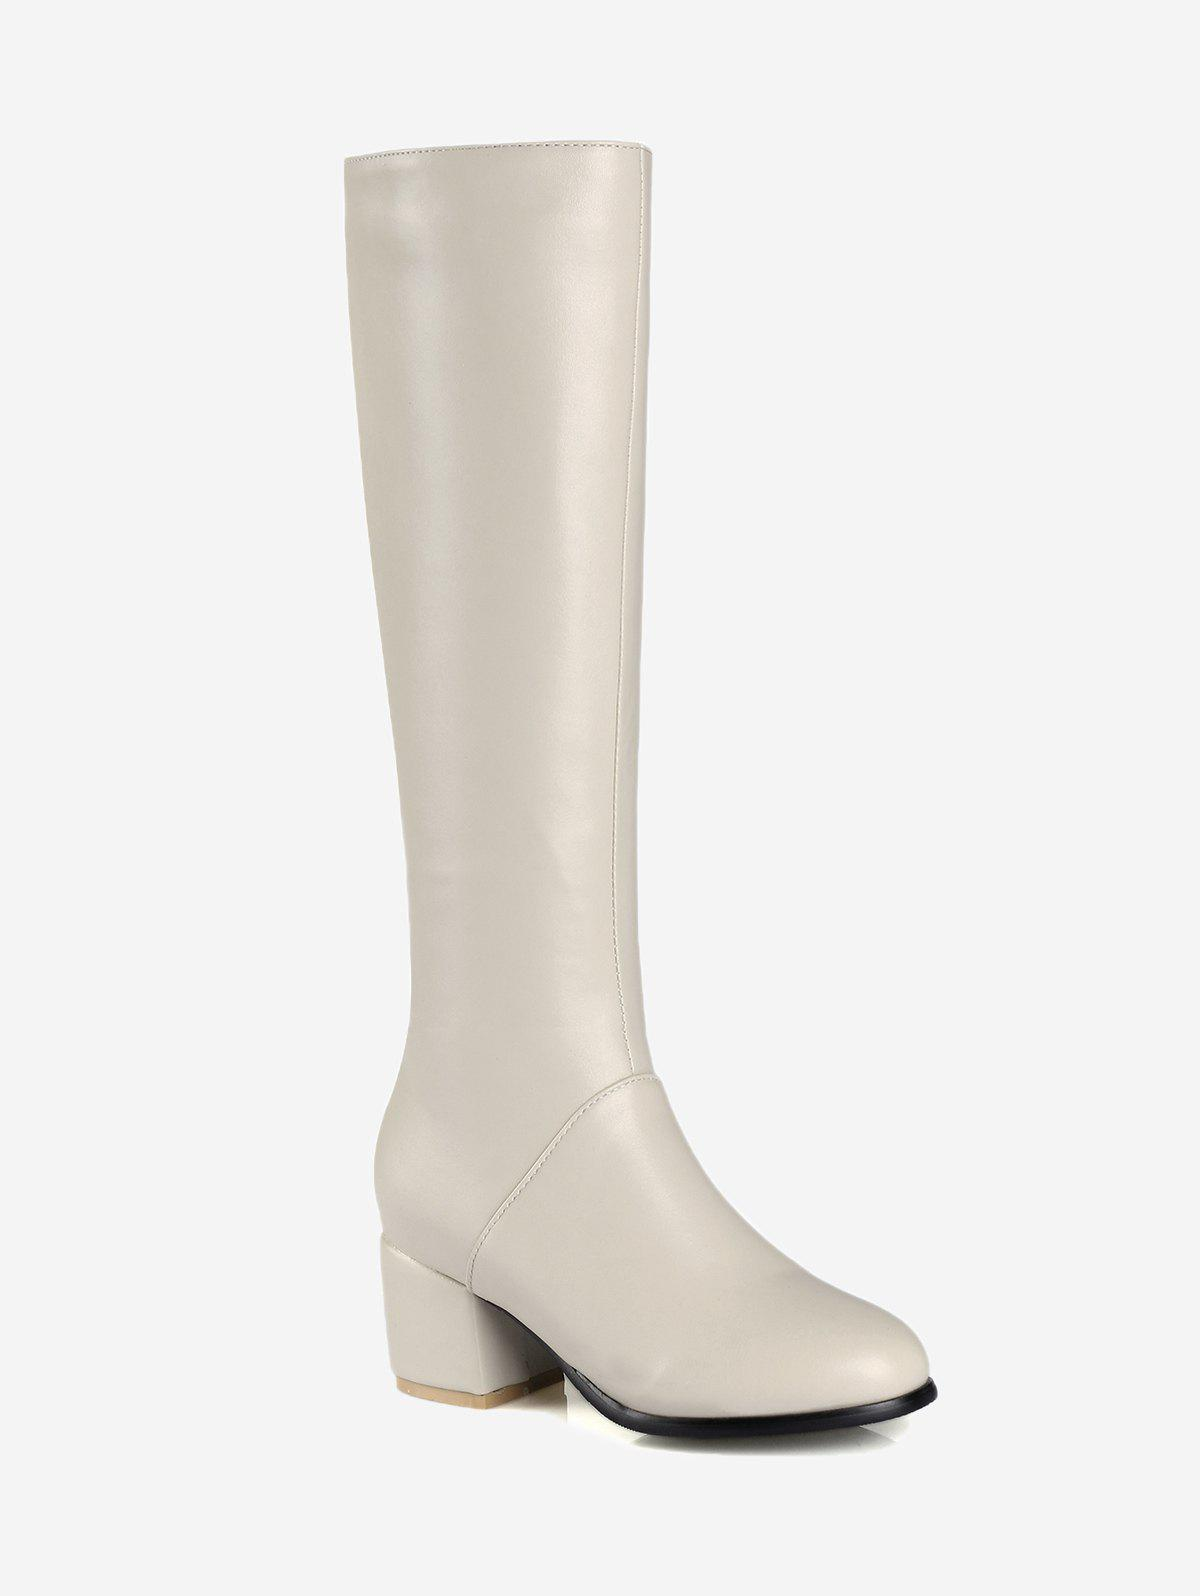 New Faux Leather Chunky Heel Knee High Boots